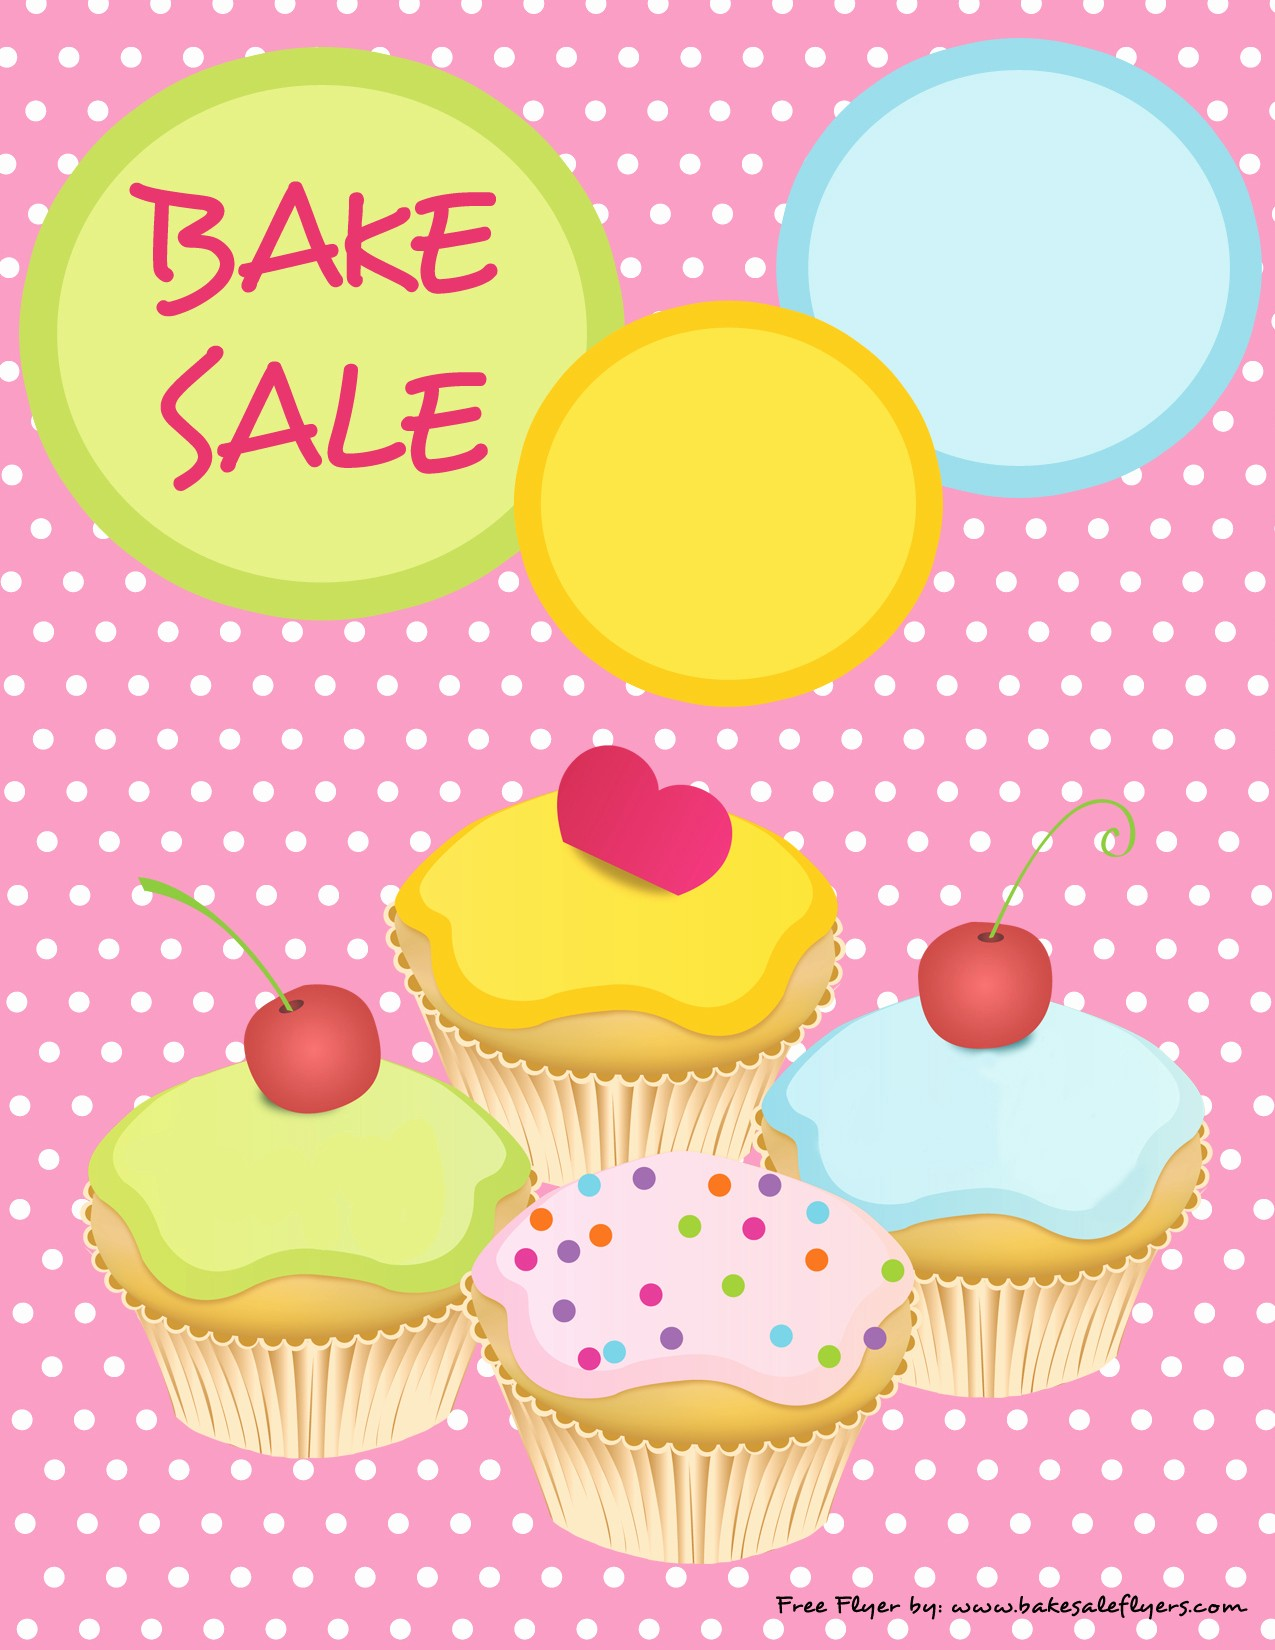 Bake Sale Flyer Template Microsoft Beautiful Best S Of Bake Sale Template Microsoft Word Free